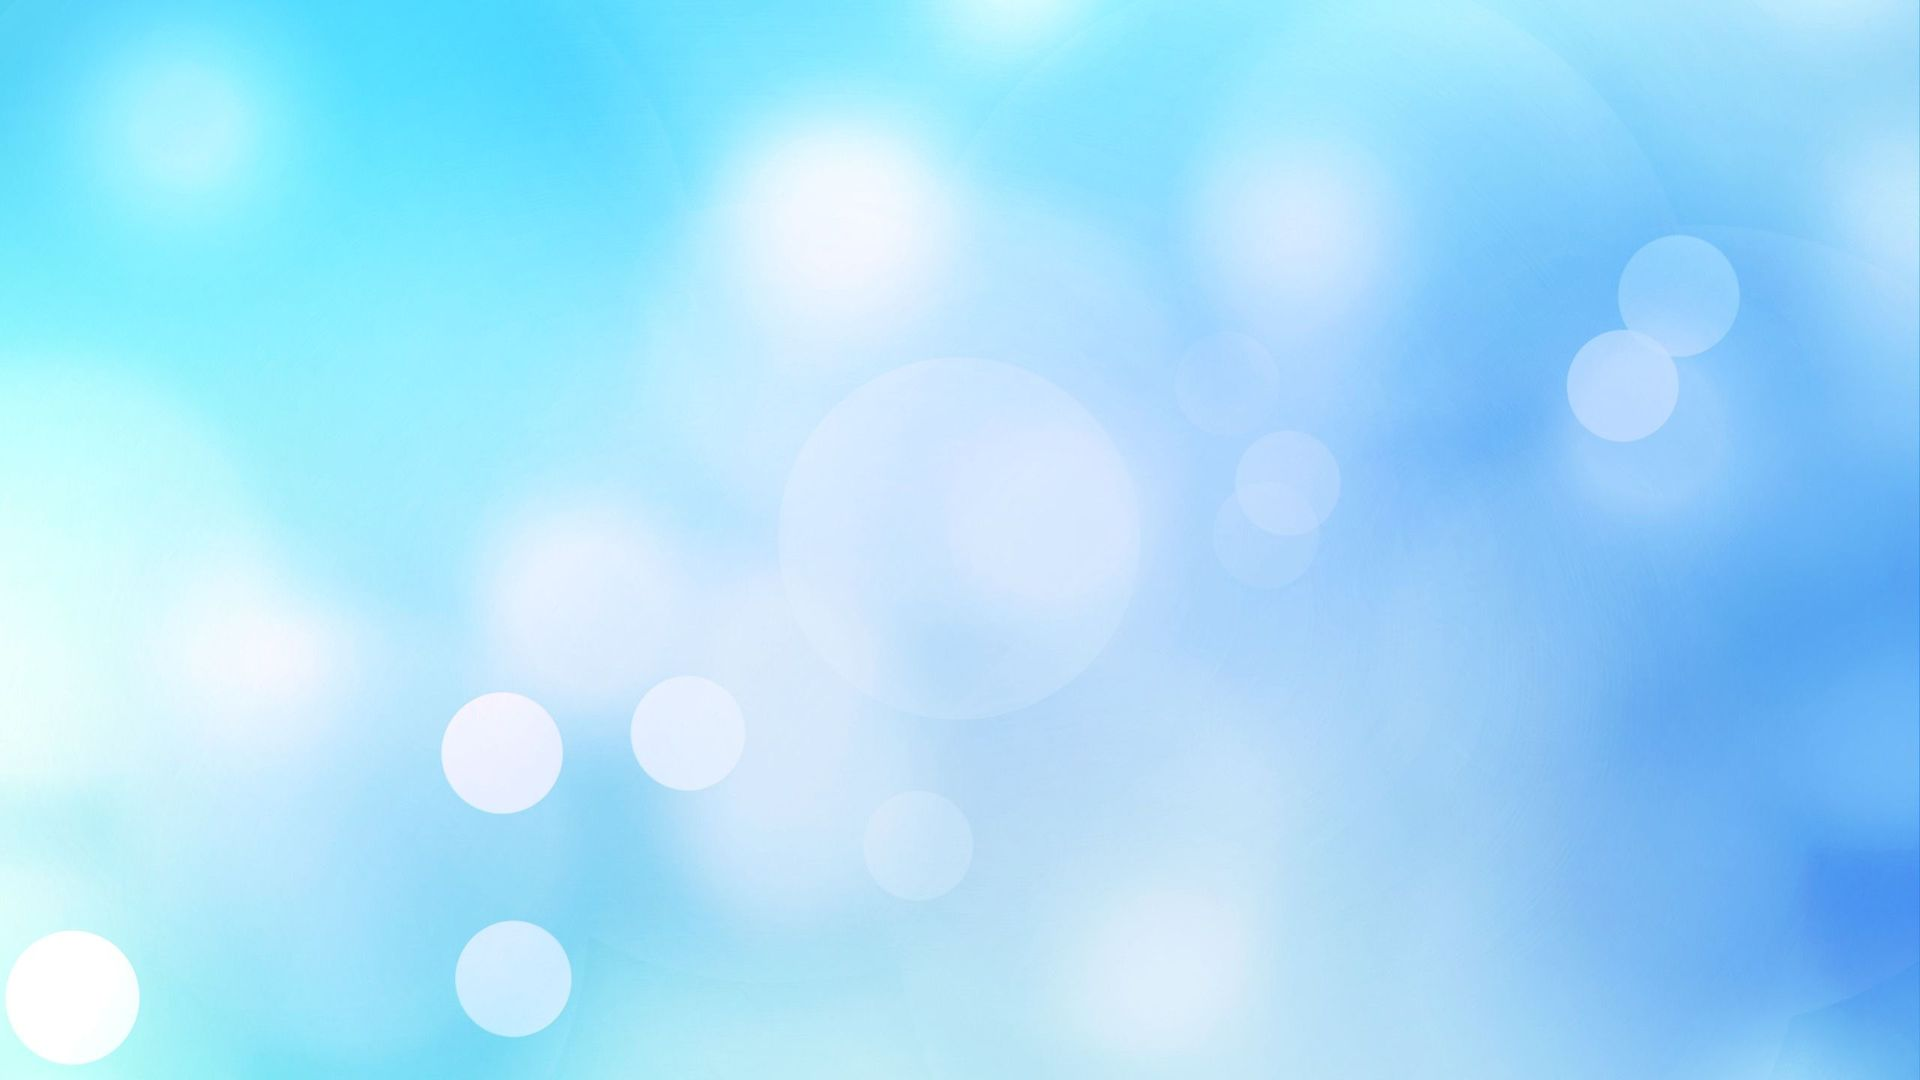 07-blue-sky-cool-abstract-background-in-hd | Halcyon Rehabilitation